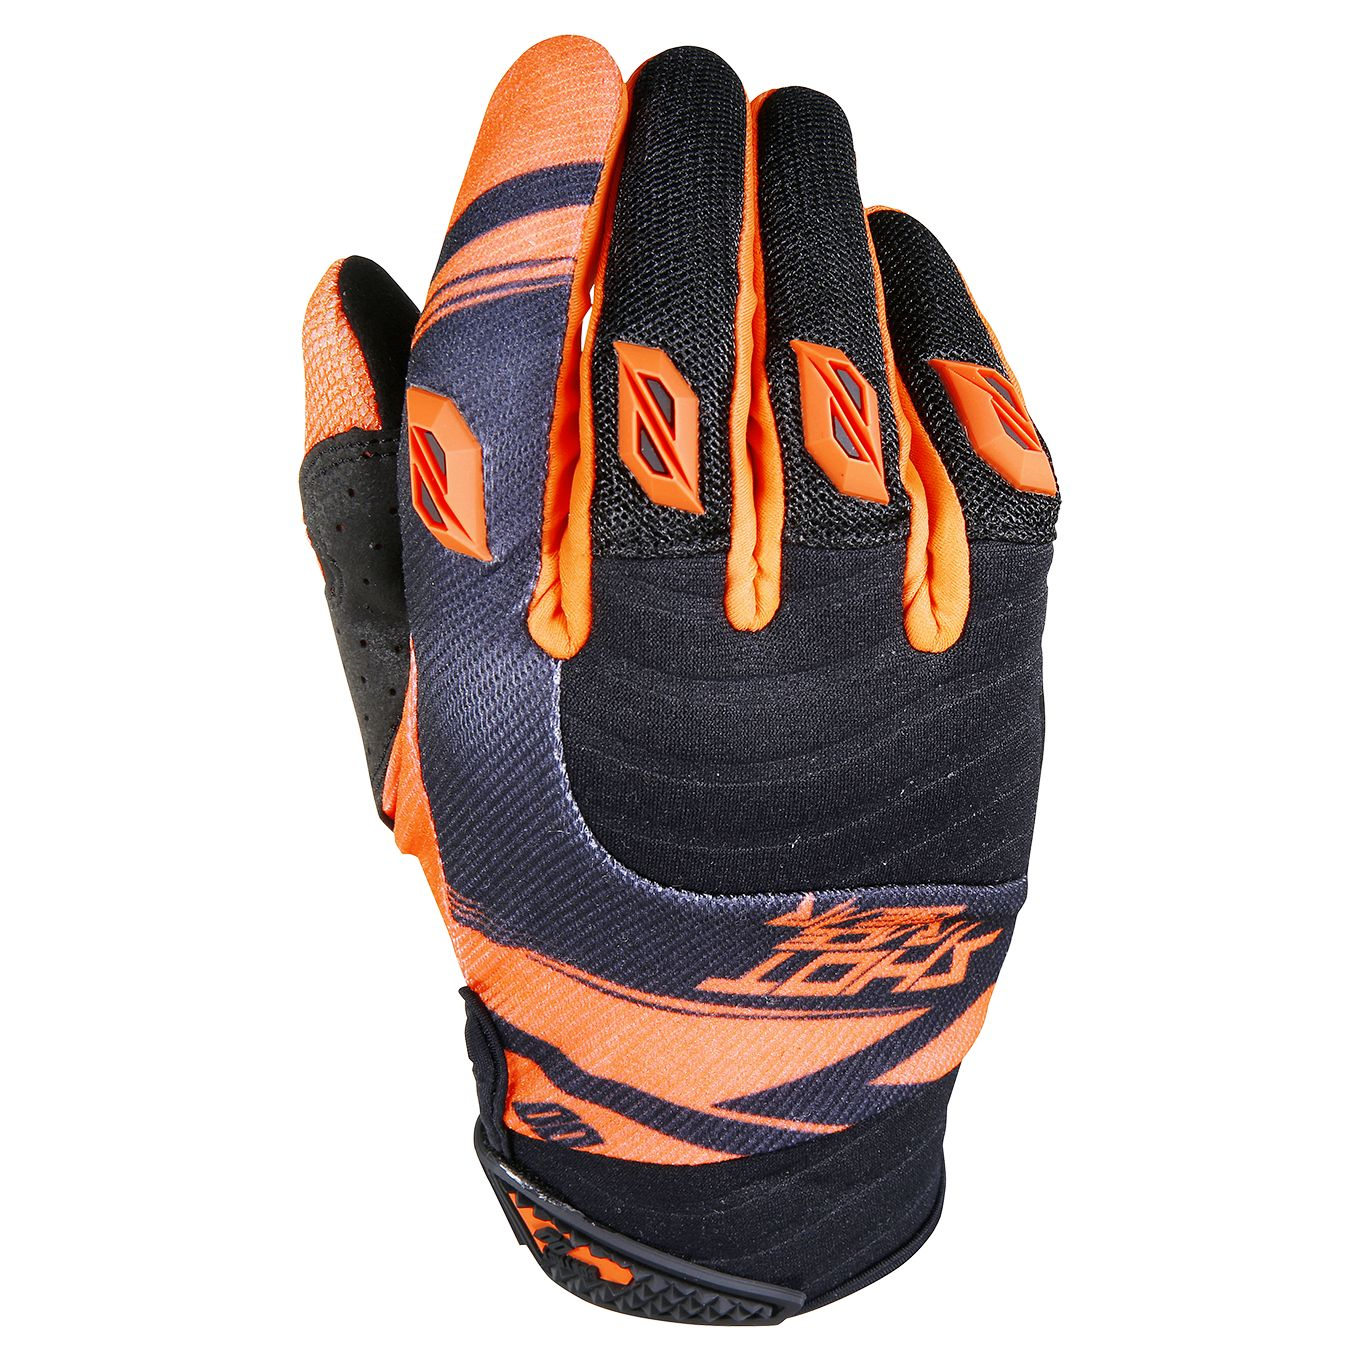 664e318a1d9 Guantes de motocross Shot outlet CONTACT CLAW NEÓN NARANJA 2017 ...